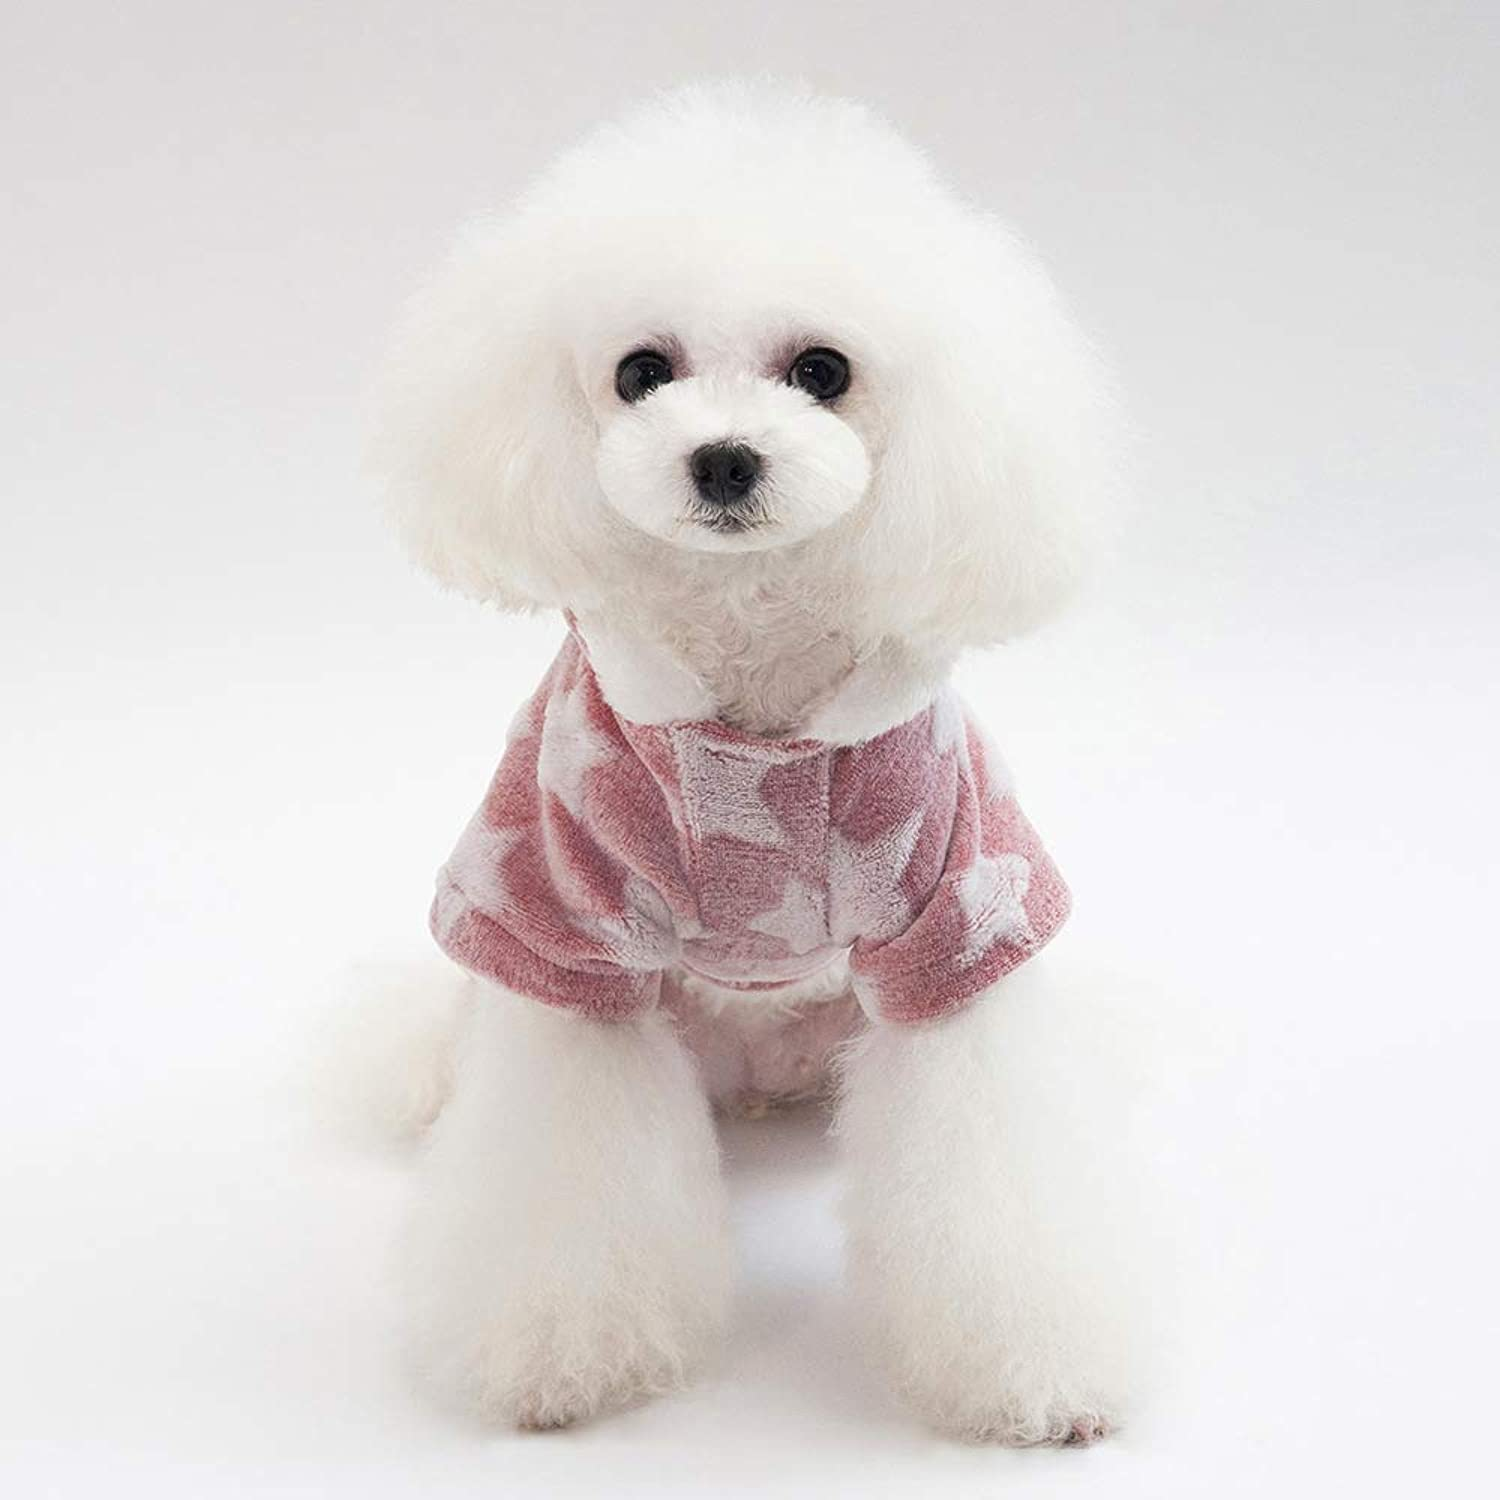 Doggy Costume Pet Clothes New Stars Four Legs Fleece Thickening Autumn and Winter Models Teddy Bears Dog Clothes (color   Pink, Size   M) Pet Dog Clothes (color   Pink, Size   M)